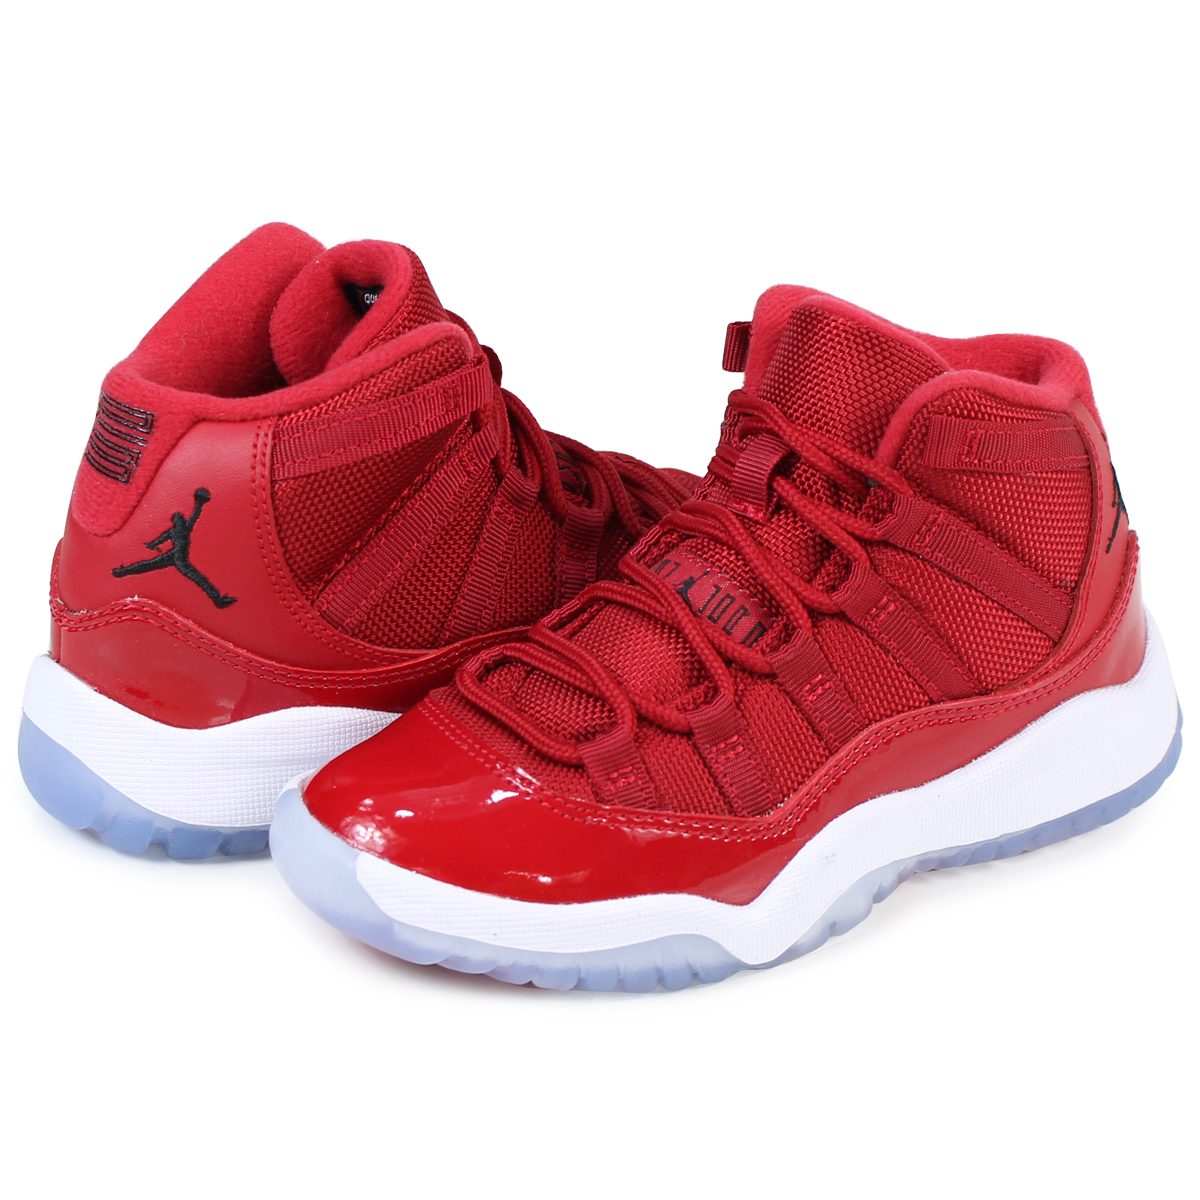 low priced 02b7d a6c15 NIKE AIR JORDAN 11 BP WIN LIKE 96 Nike Air Jordan 11 kids sneakers  378,039-623 shoes red [load planned Shinnyu load in reservation product  12/22 ...